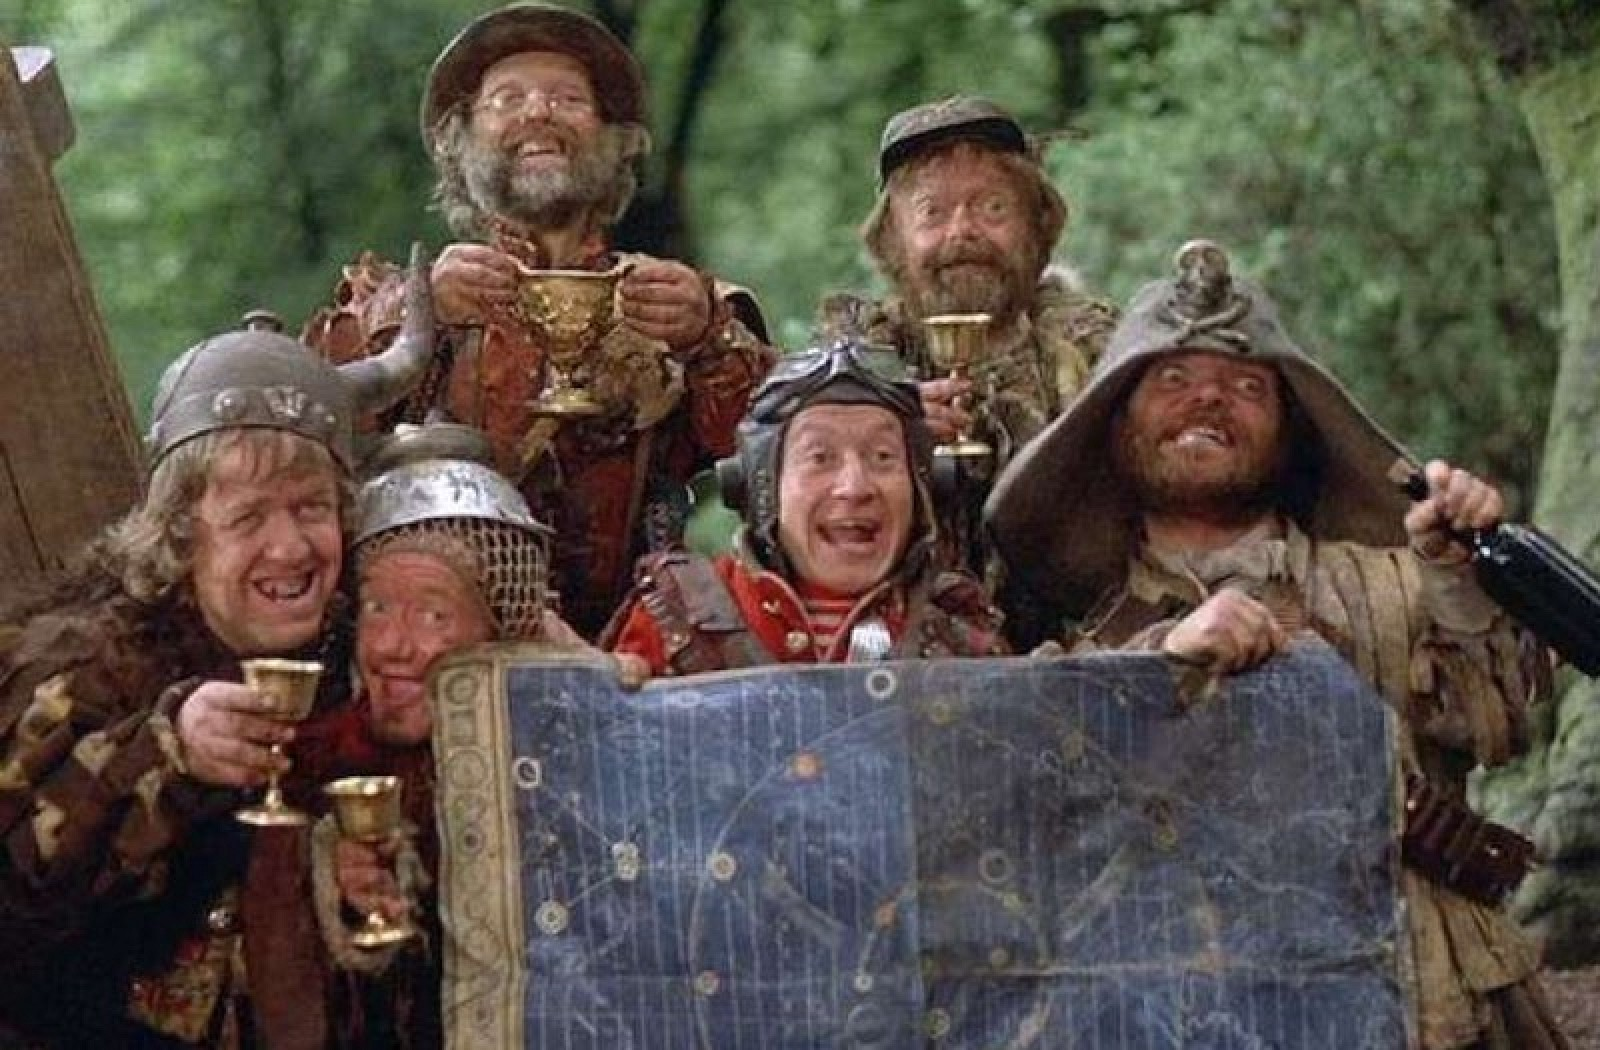 Apple's Upcoming 'Time Bandits' Series to Be Directed by Taika Waititi